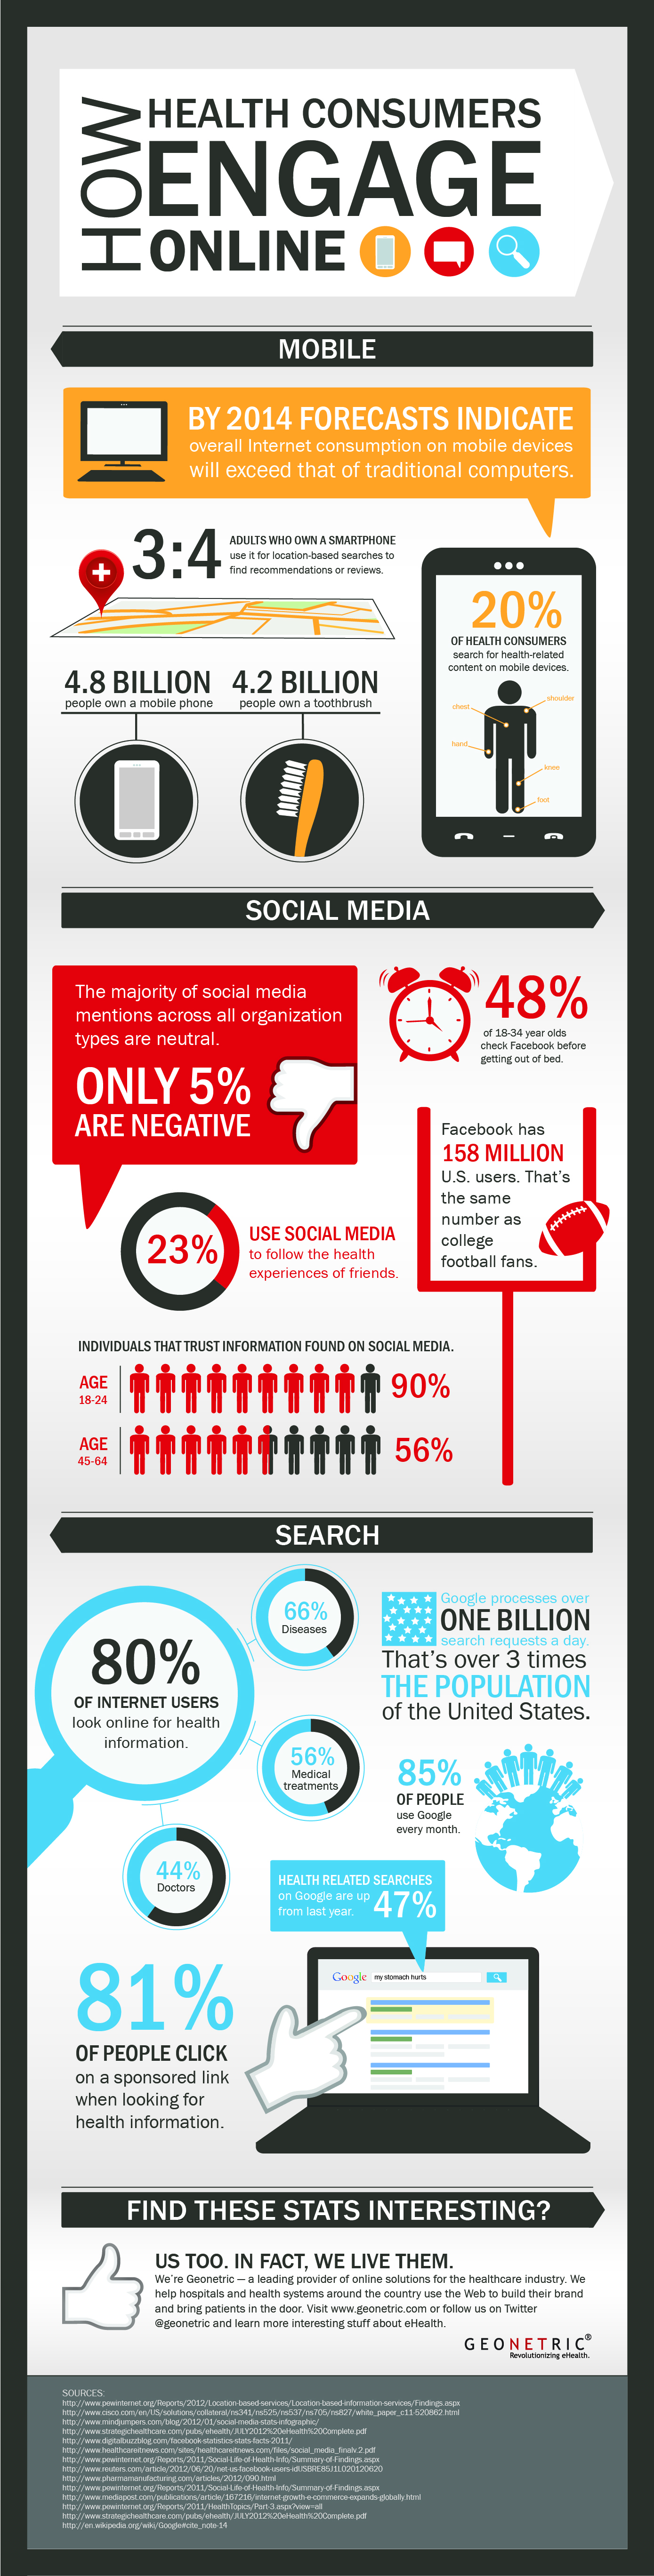 80% OF Internet Users Look Online for Health Information